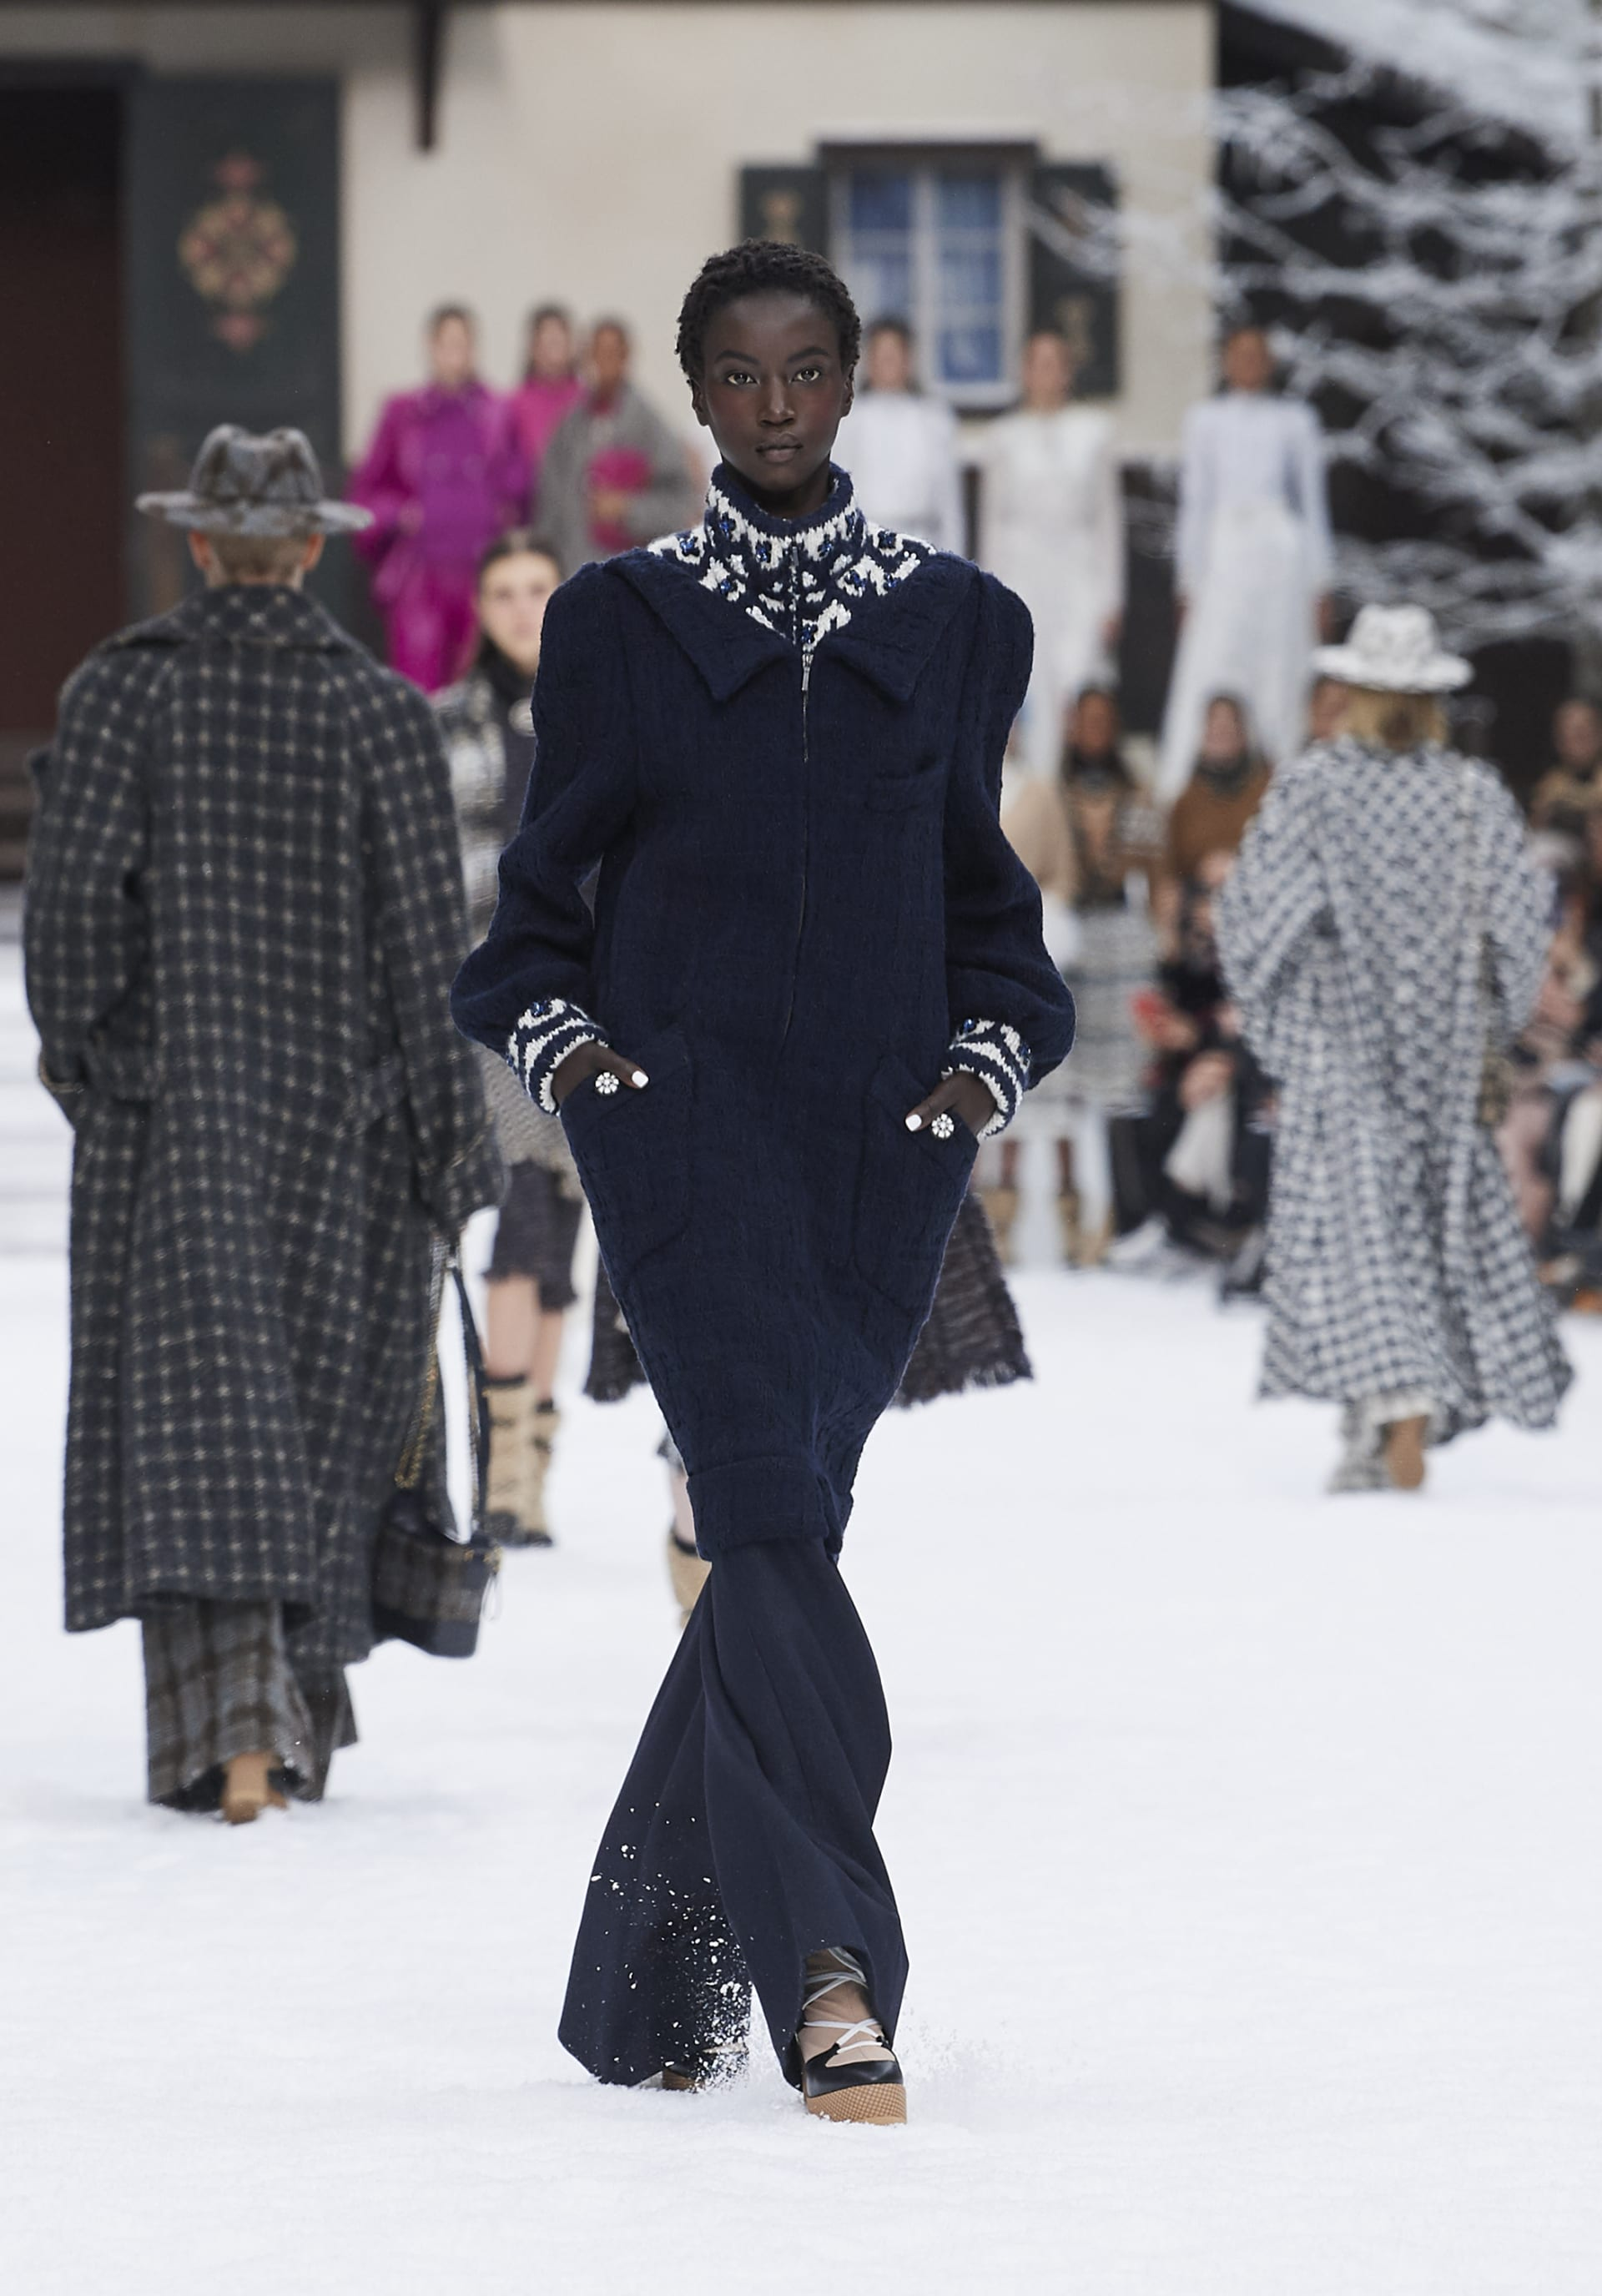 View 1 - Look 17 - Fall-Winter 2019/20